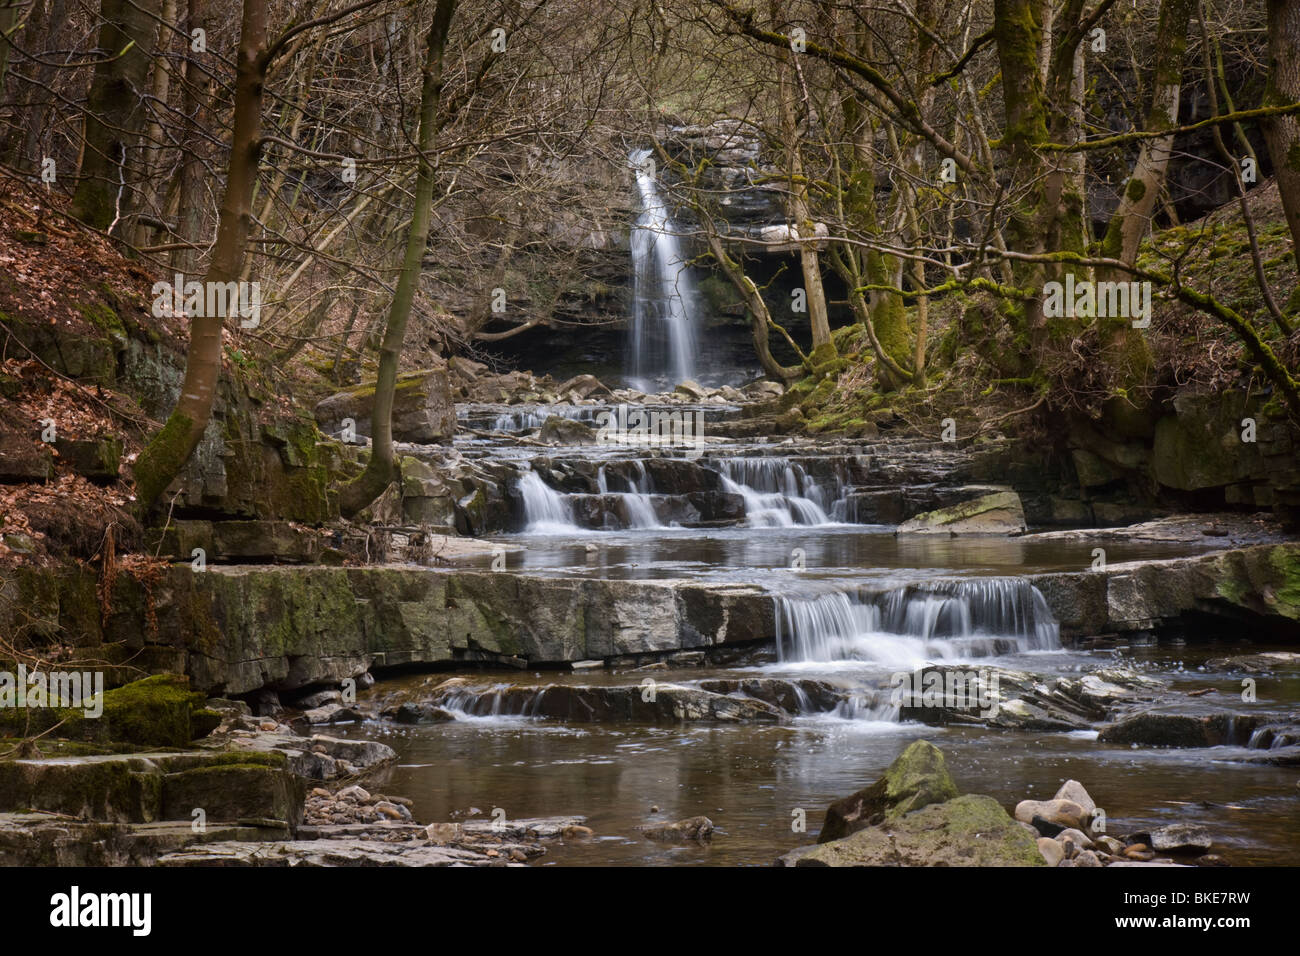 Summerhill Force and Bow Lee Back just below Gibson's Cave, Upper Teesdale. - Stock Image